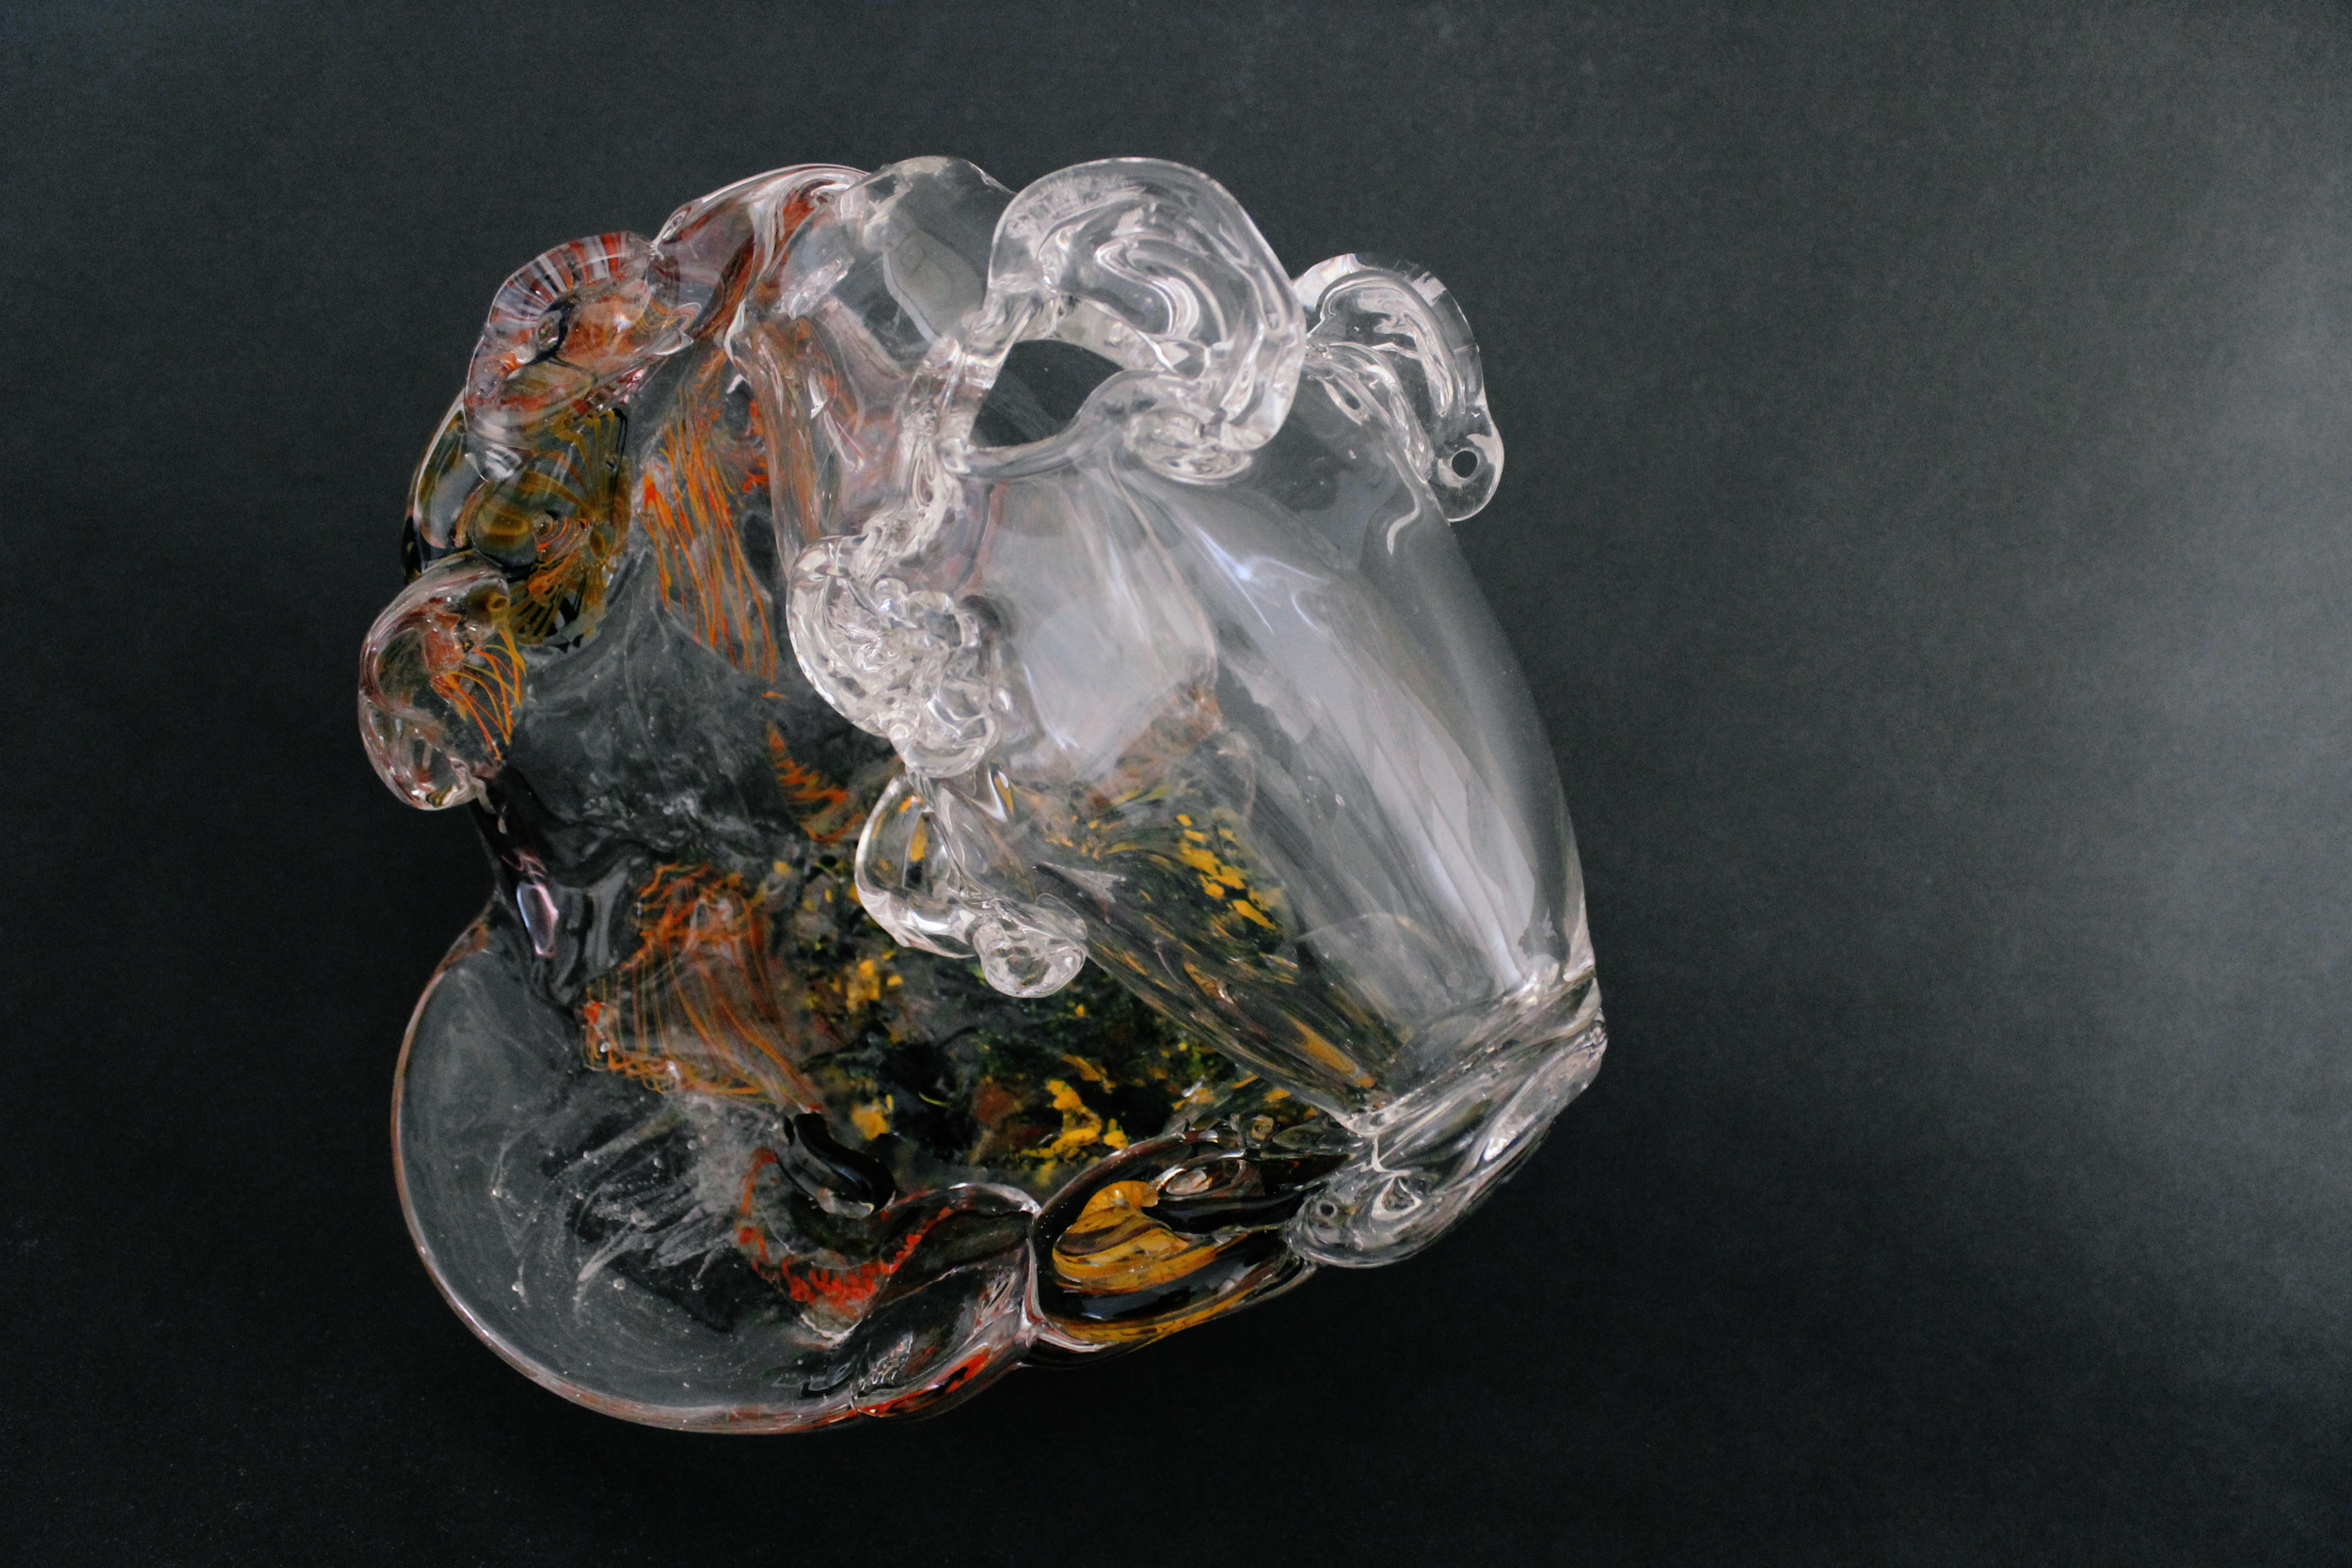 All Ears ✤ 2016 ✤ Blown and Hot Cast Glass with Reclaimed Components ✤ 10 x 12 x 9 in 25.5 x 30.5 x 23 cm This pieces highlights listening as an introspective ways of digesting different situations and realities.